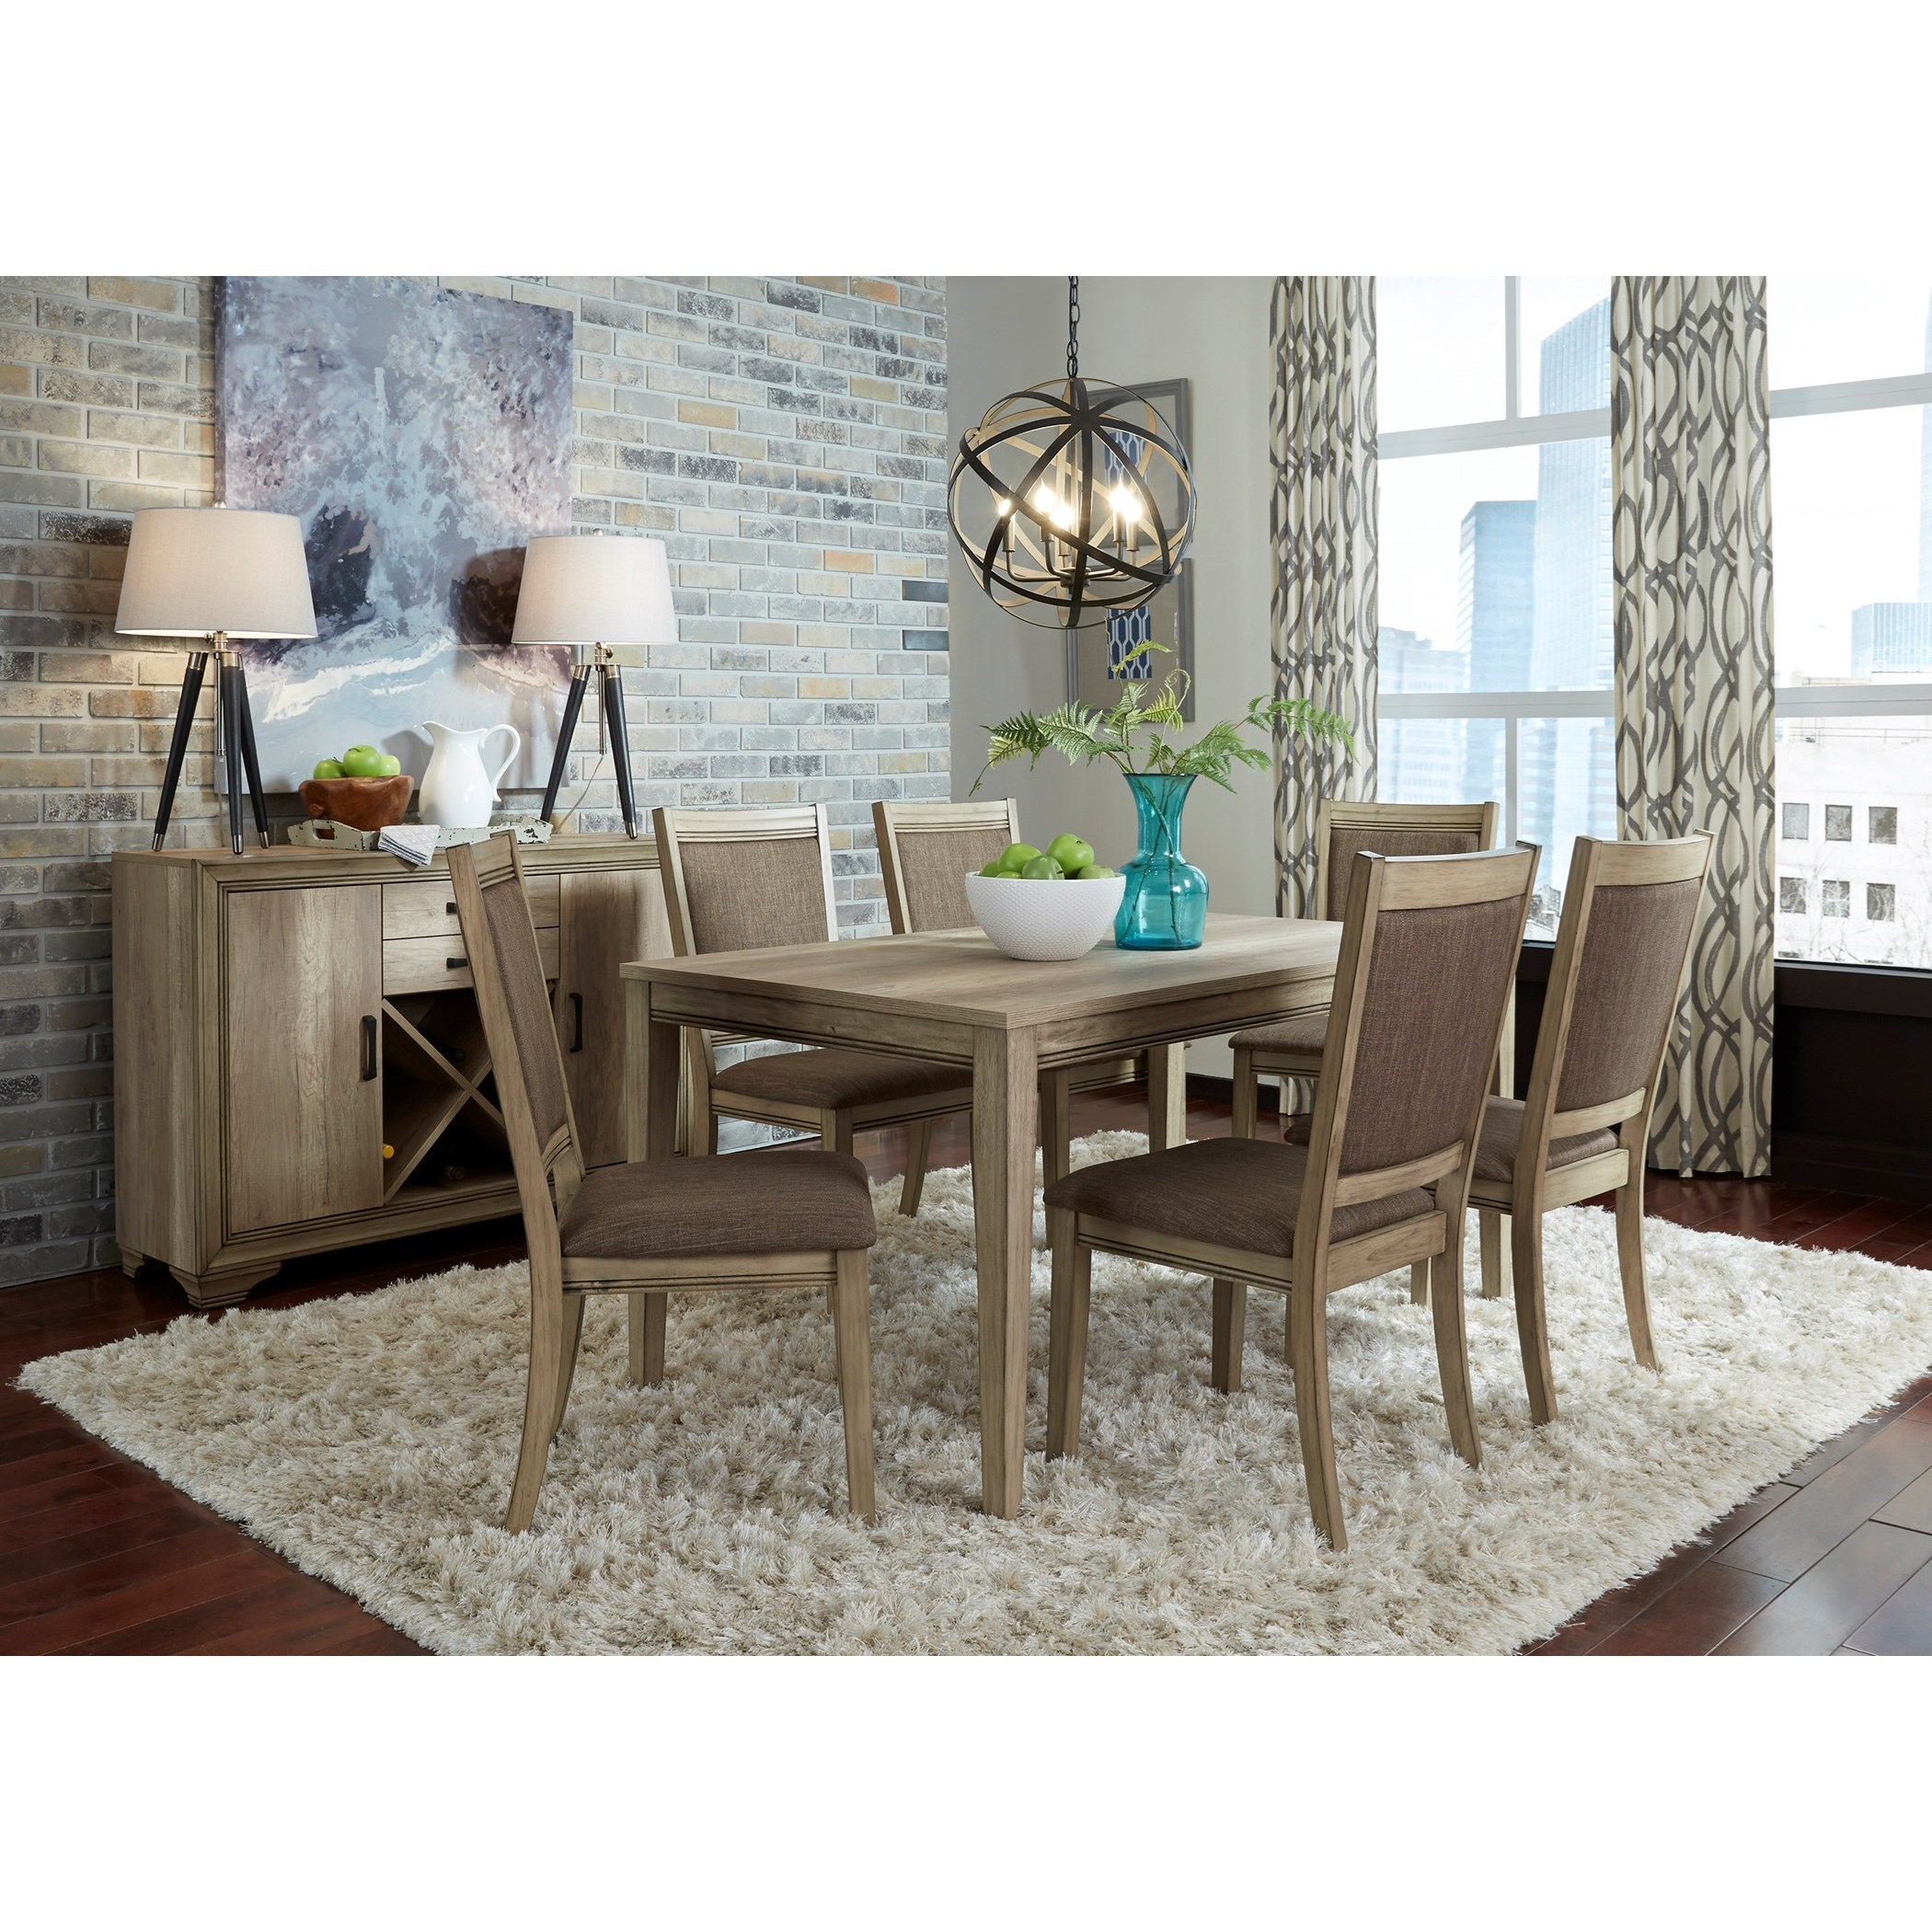 Sun Valley Casual Dining Room Group by Liberty Furniture at Lapeer Furniture & Mattress Center